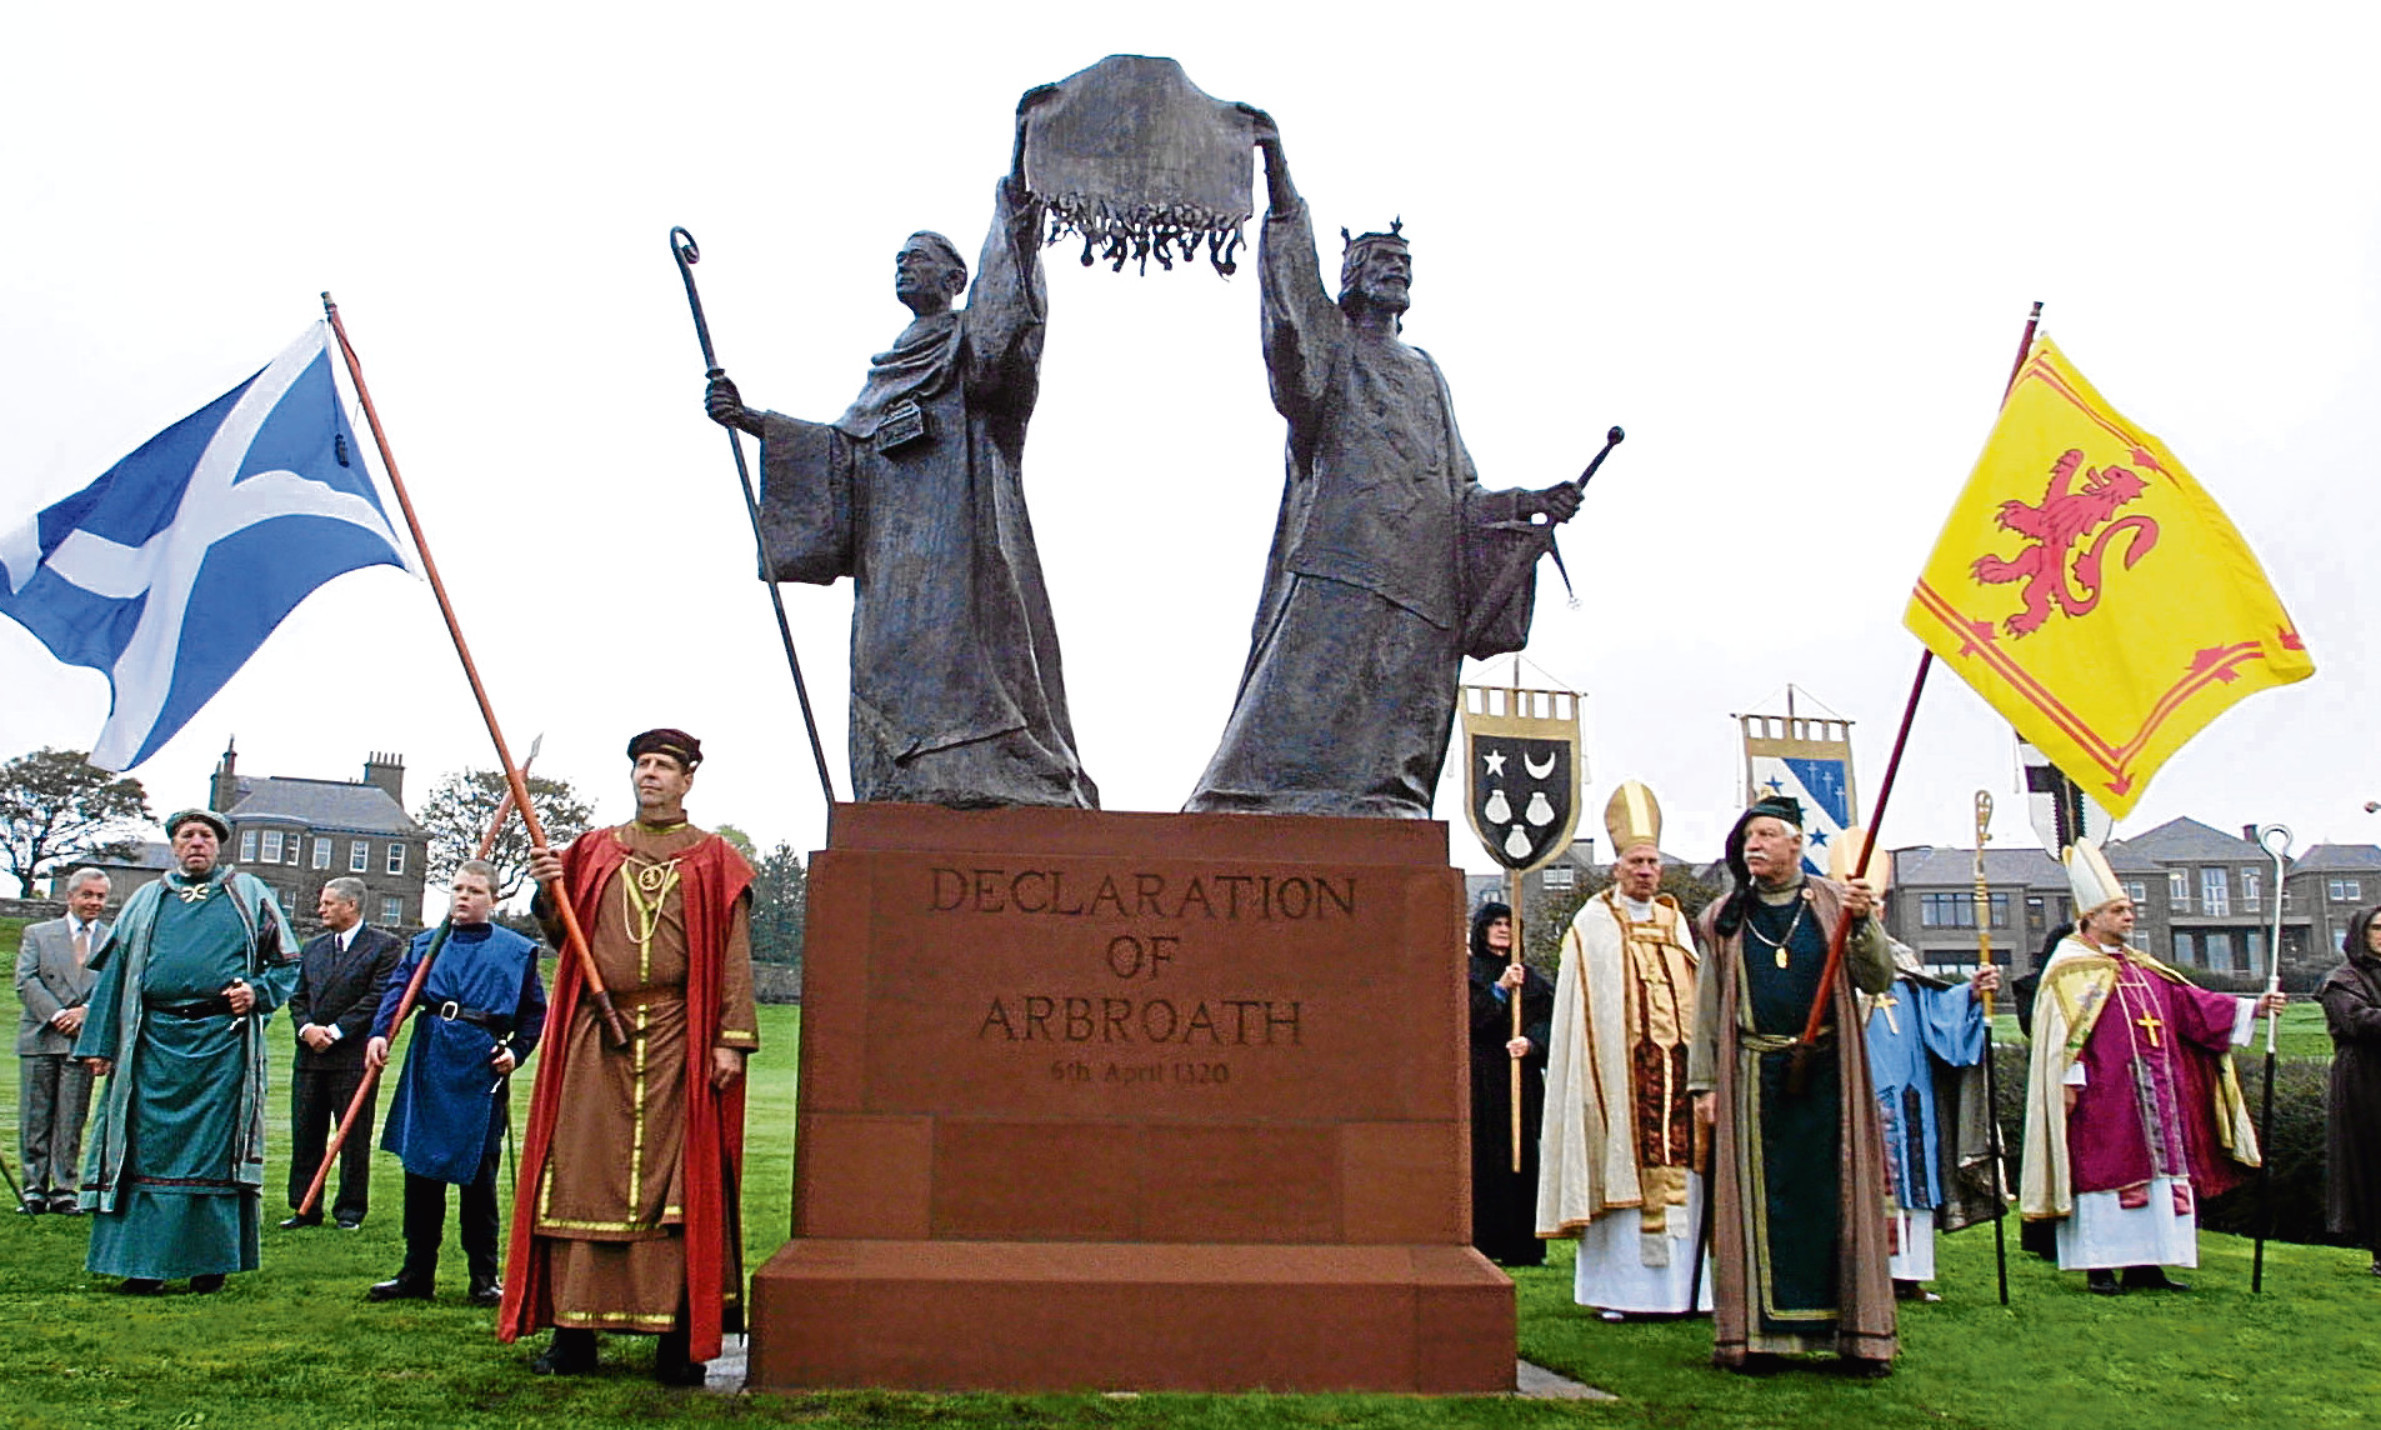 Members of Arbroath Pageant Society take their places during the ceremony to unveil the Declaration of Arbroath statue. Mike thinks we should be shouting about the document a lot louder.